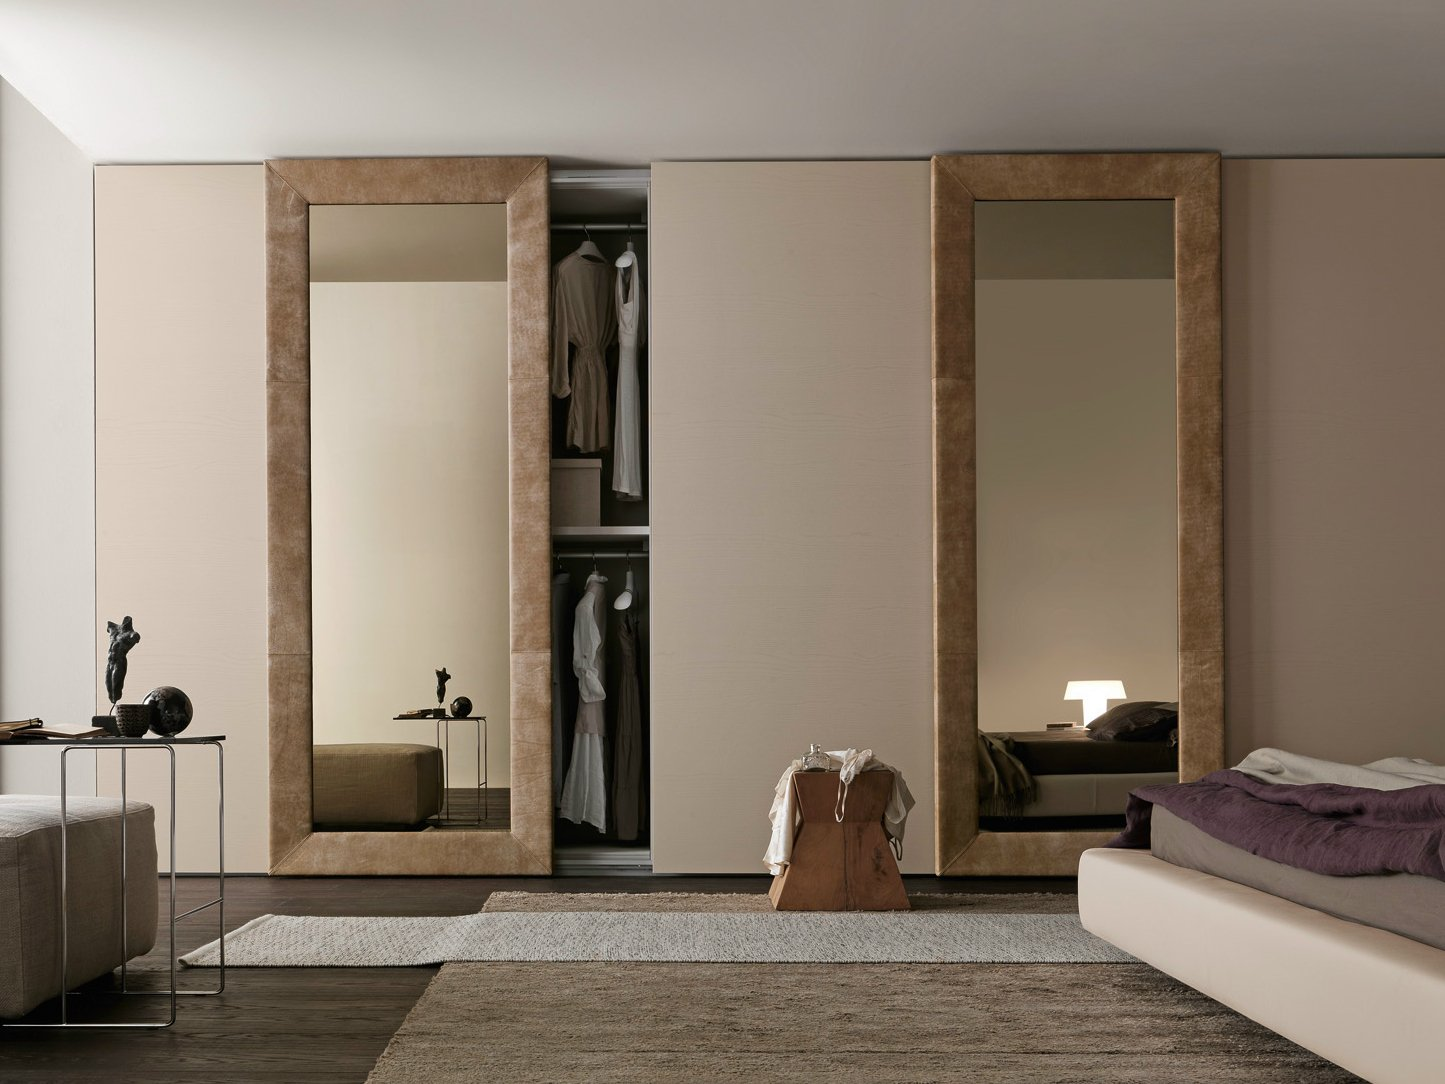 sectional mirrored wardrobe with sliding doors mirror by presotto industrie mobili design. Black Bedroom Furniture Sets. Home Design Ideas